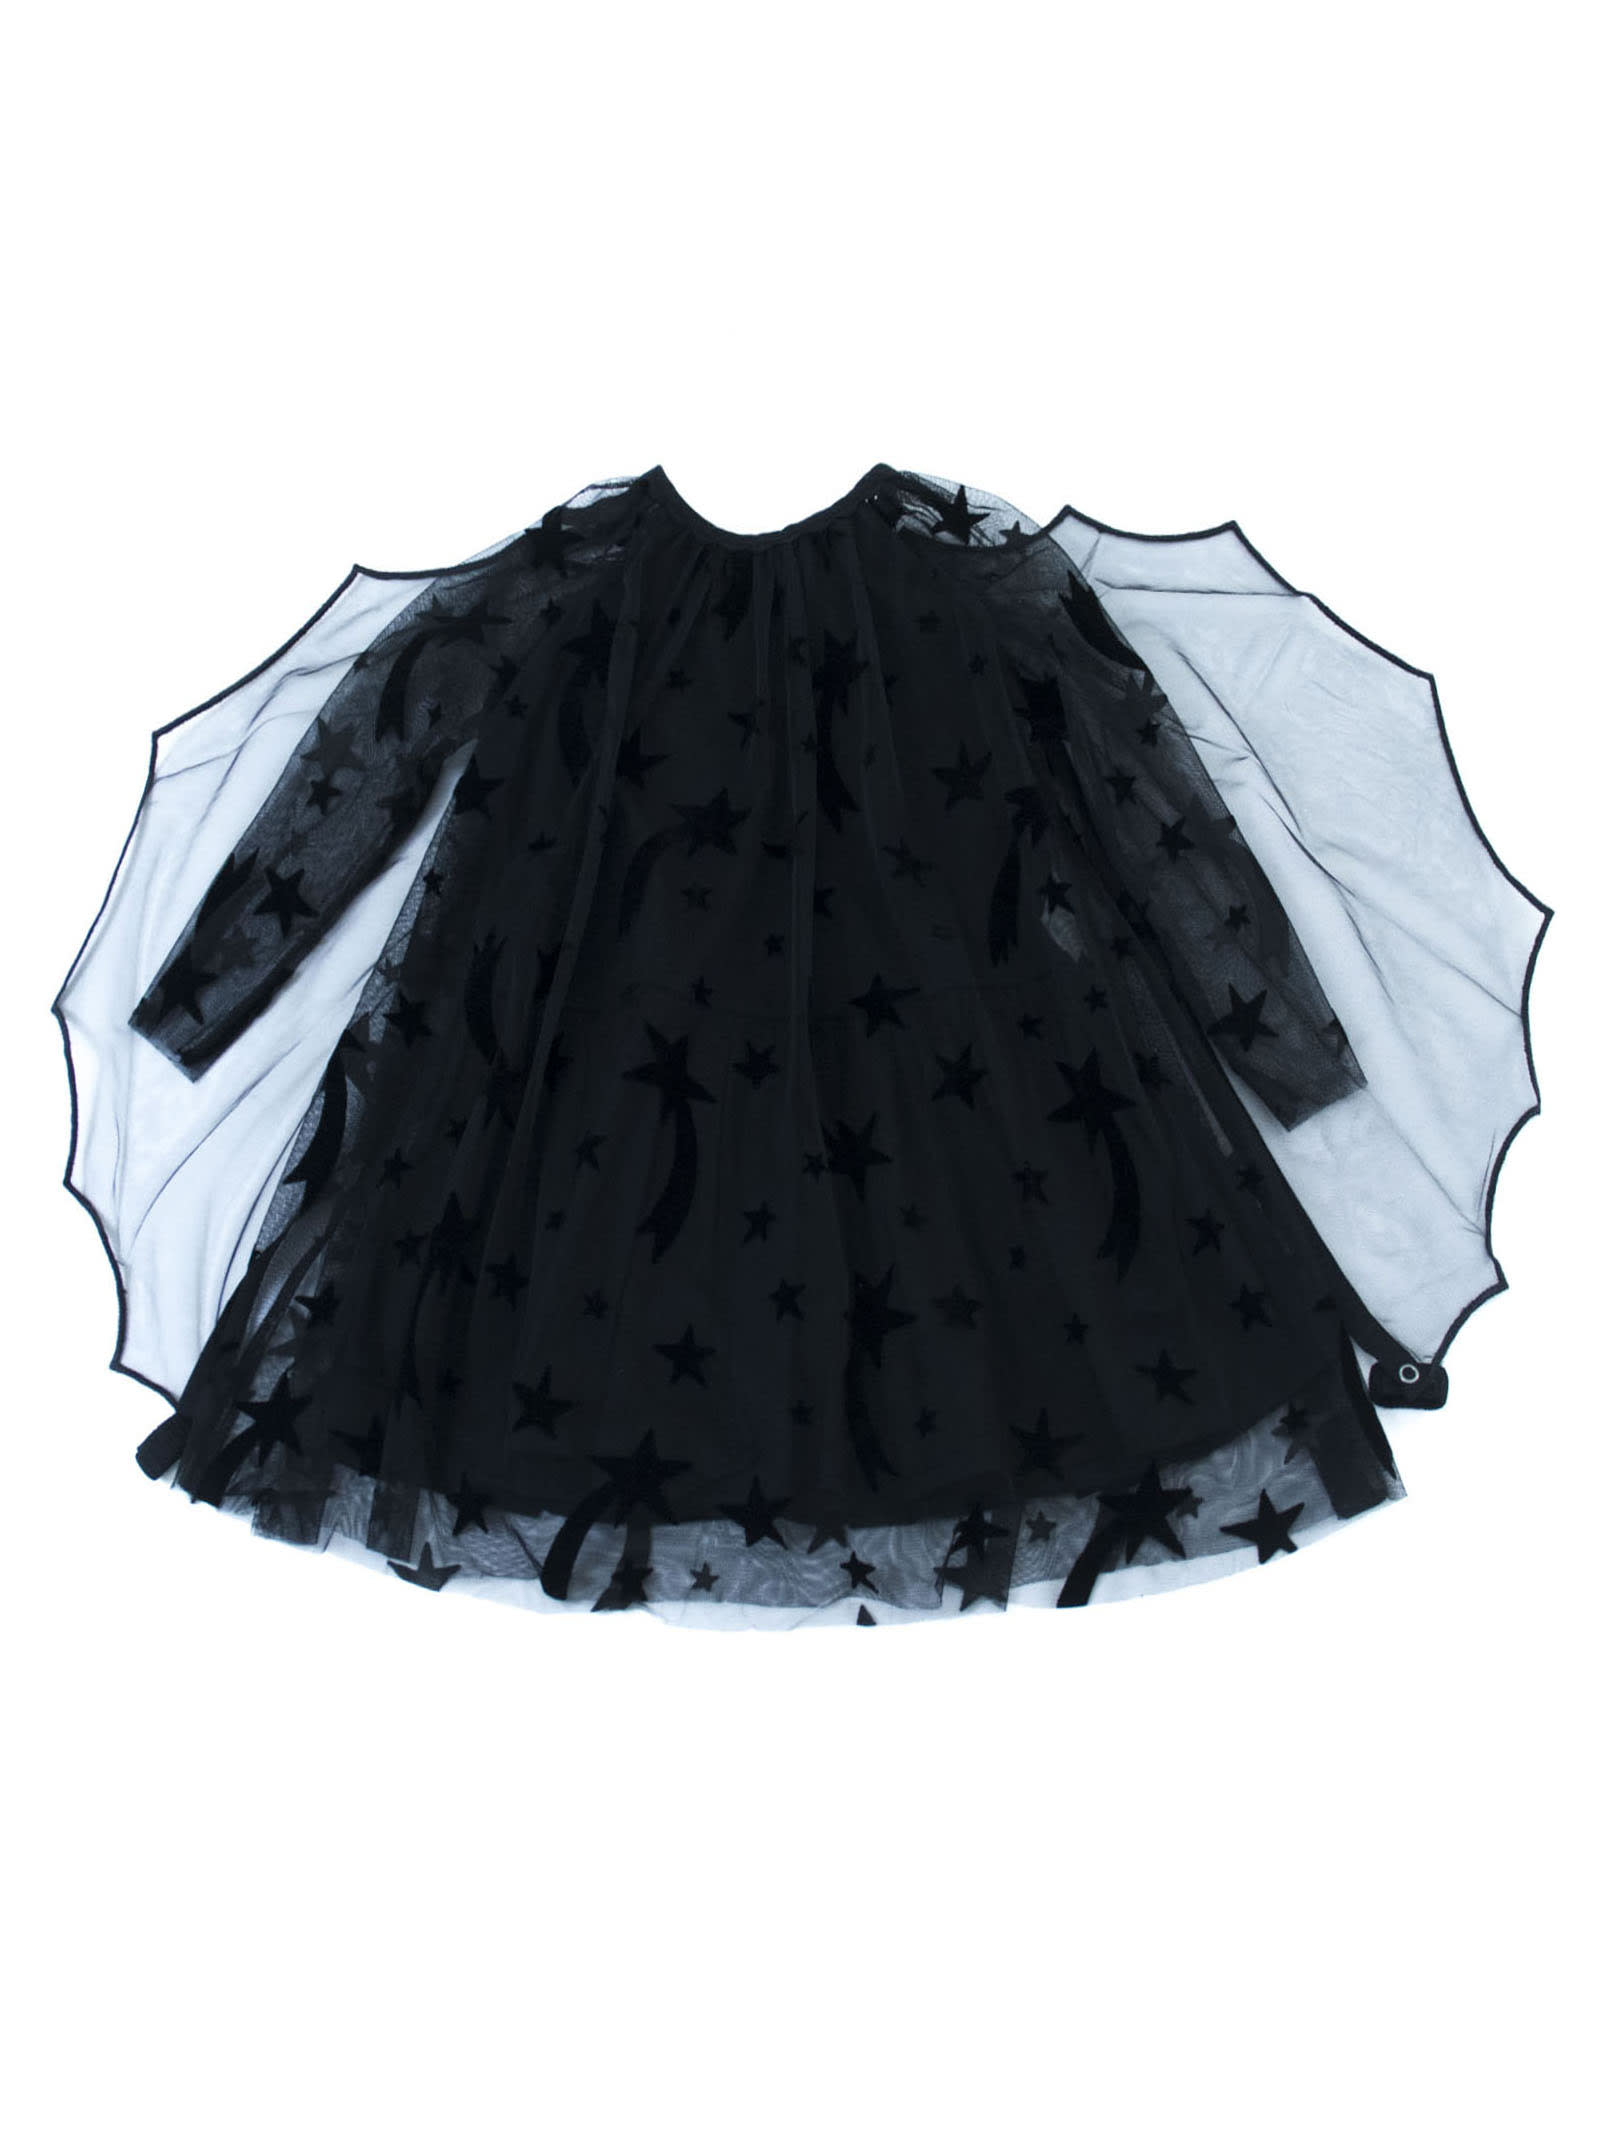 Stella McCartney Black Shoot Stars Dress